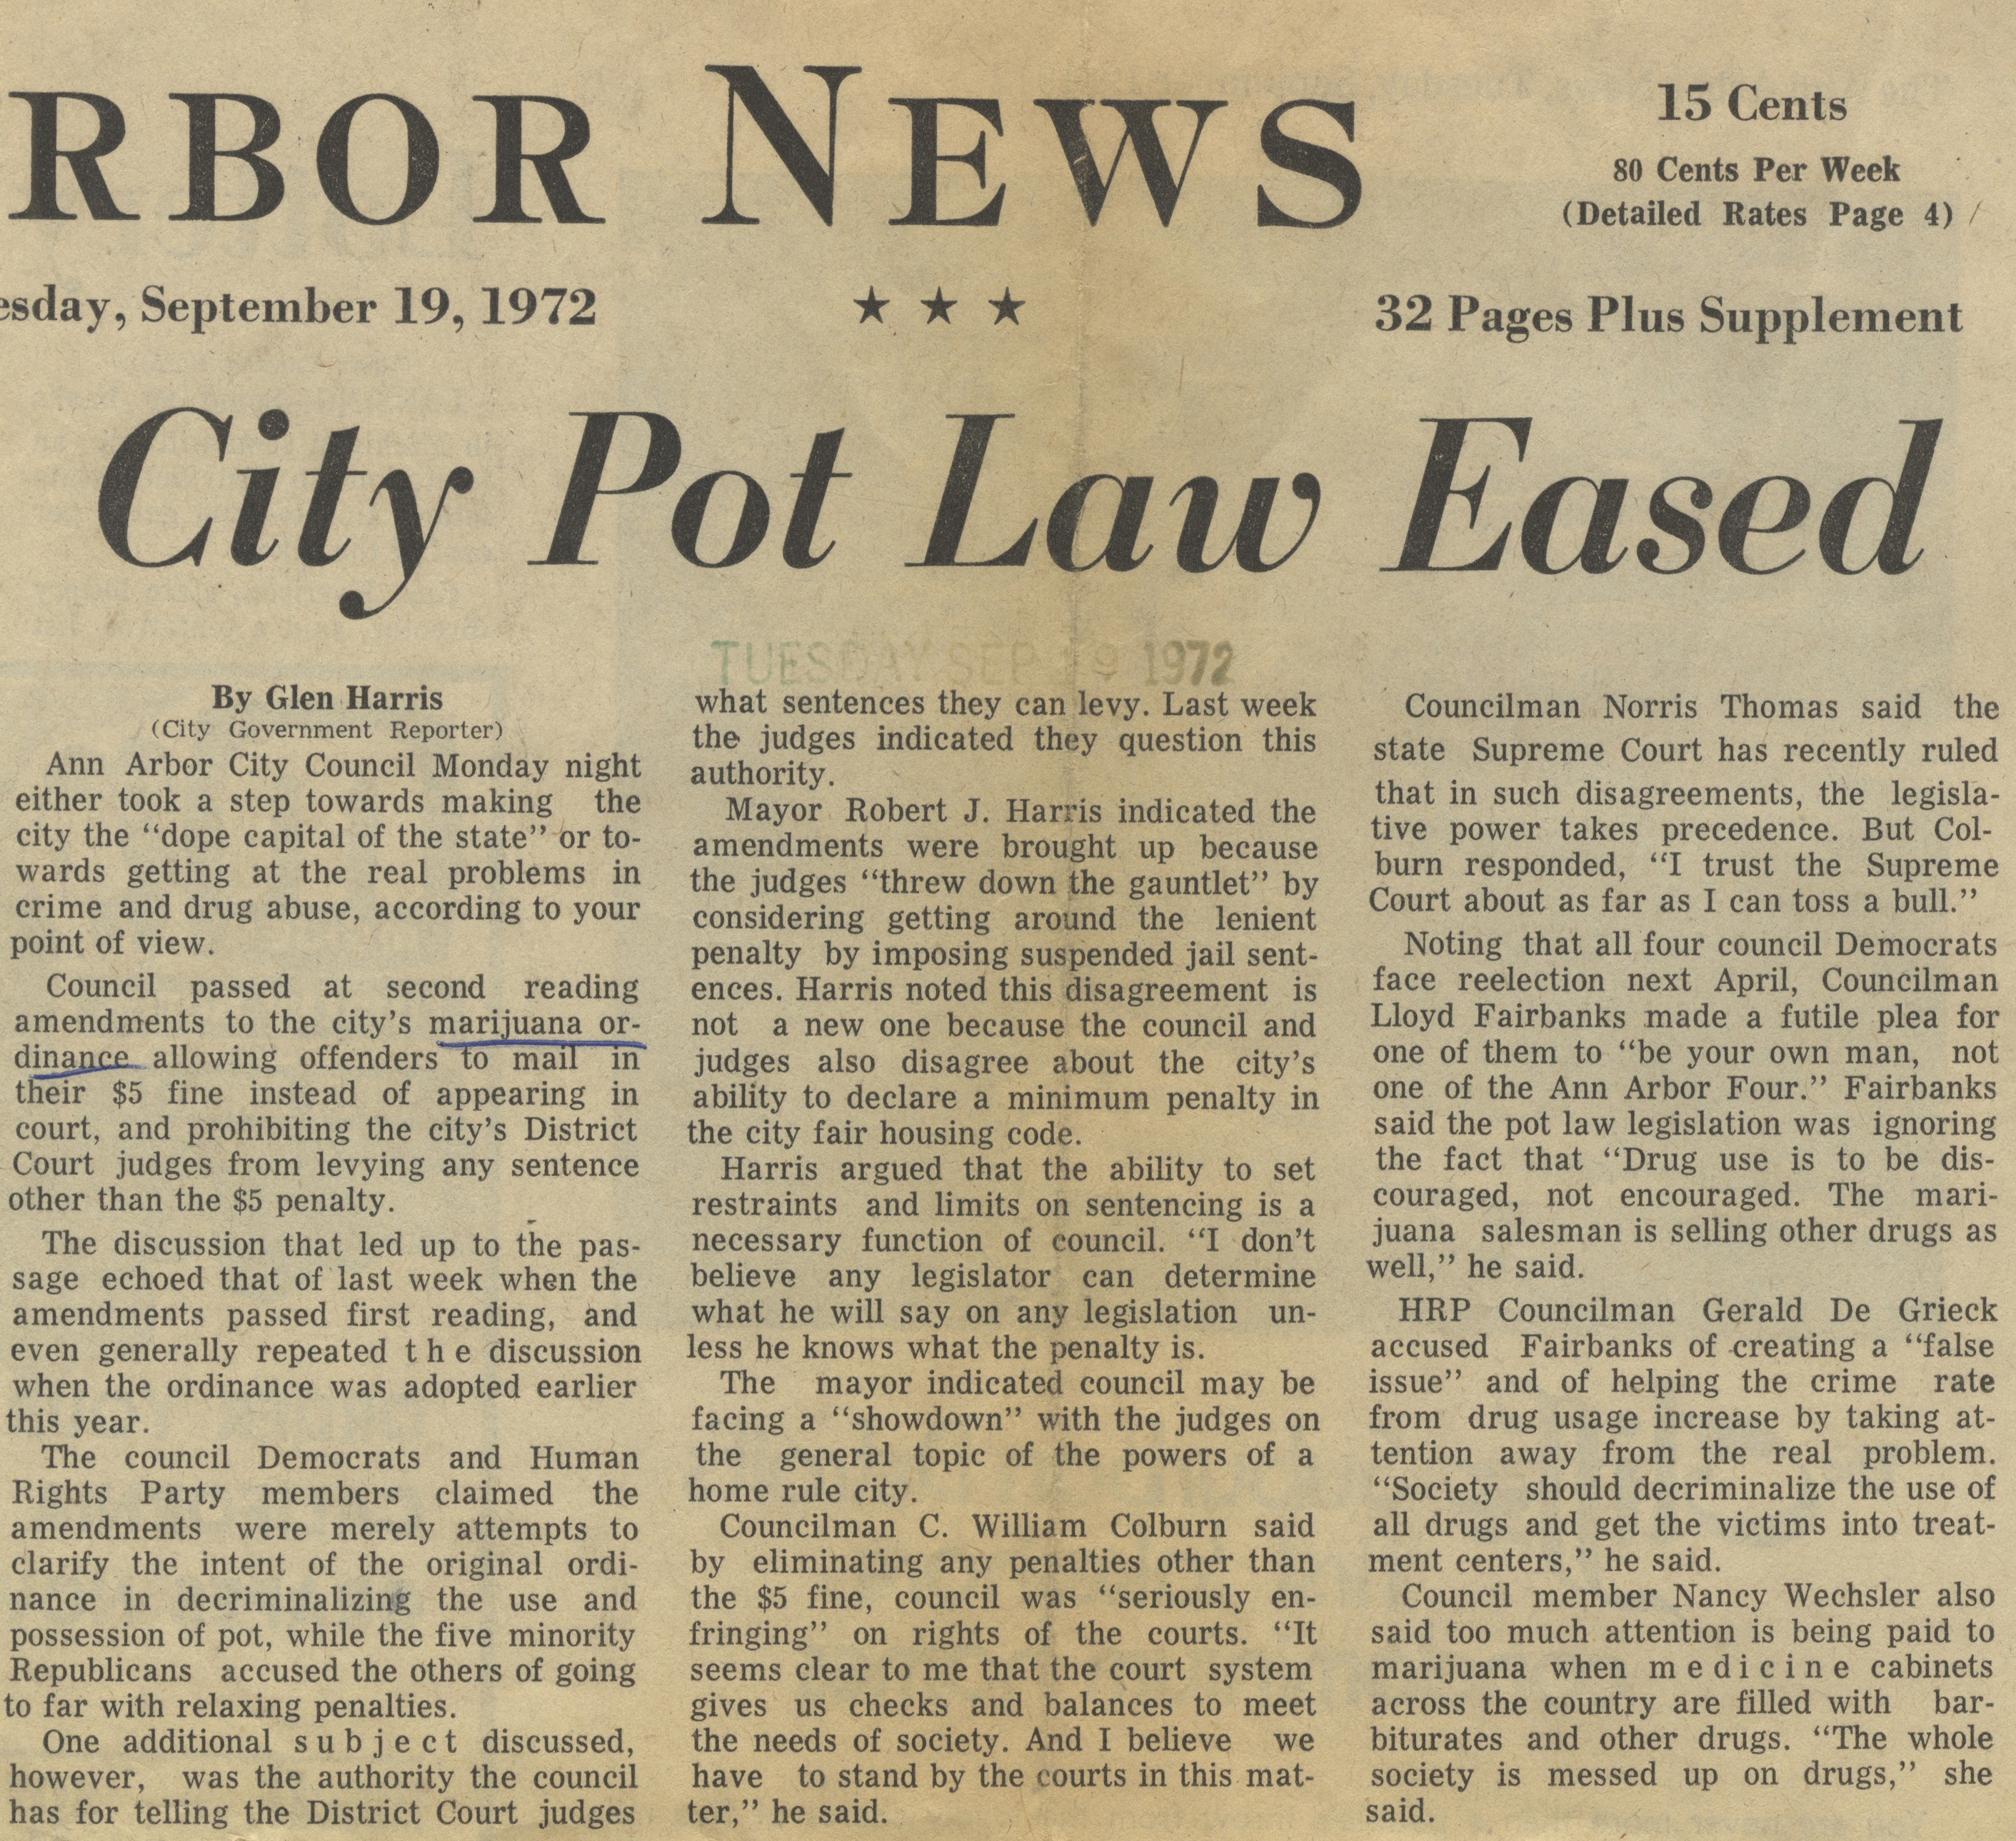 City Pot Law Eased image